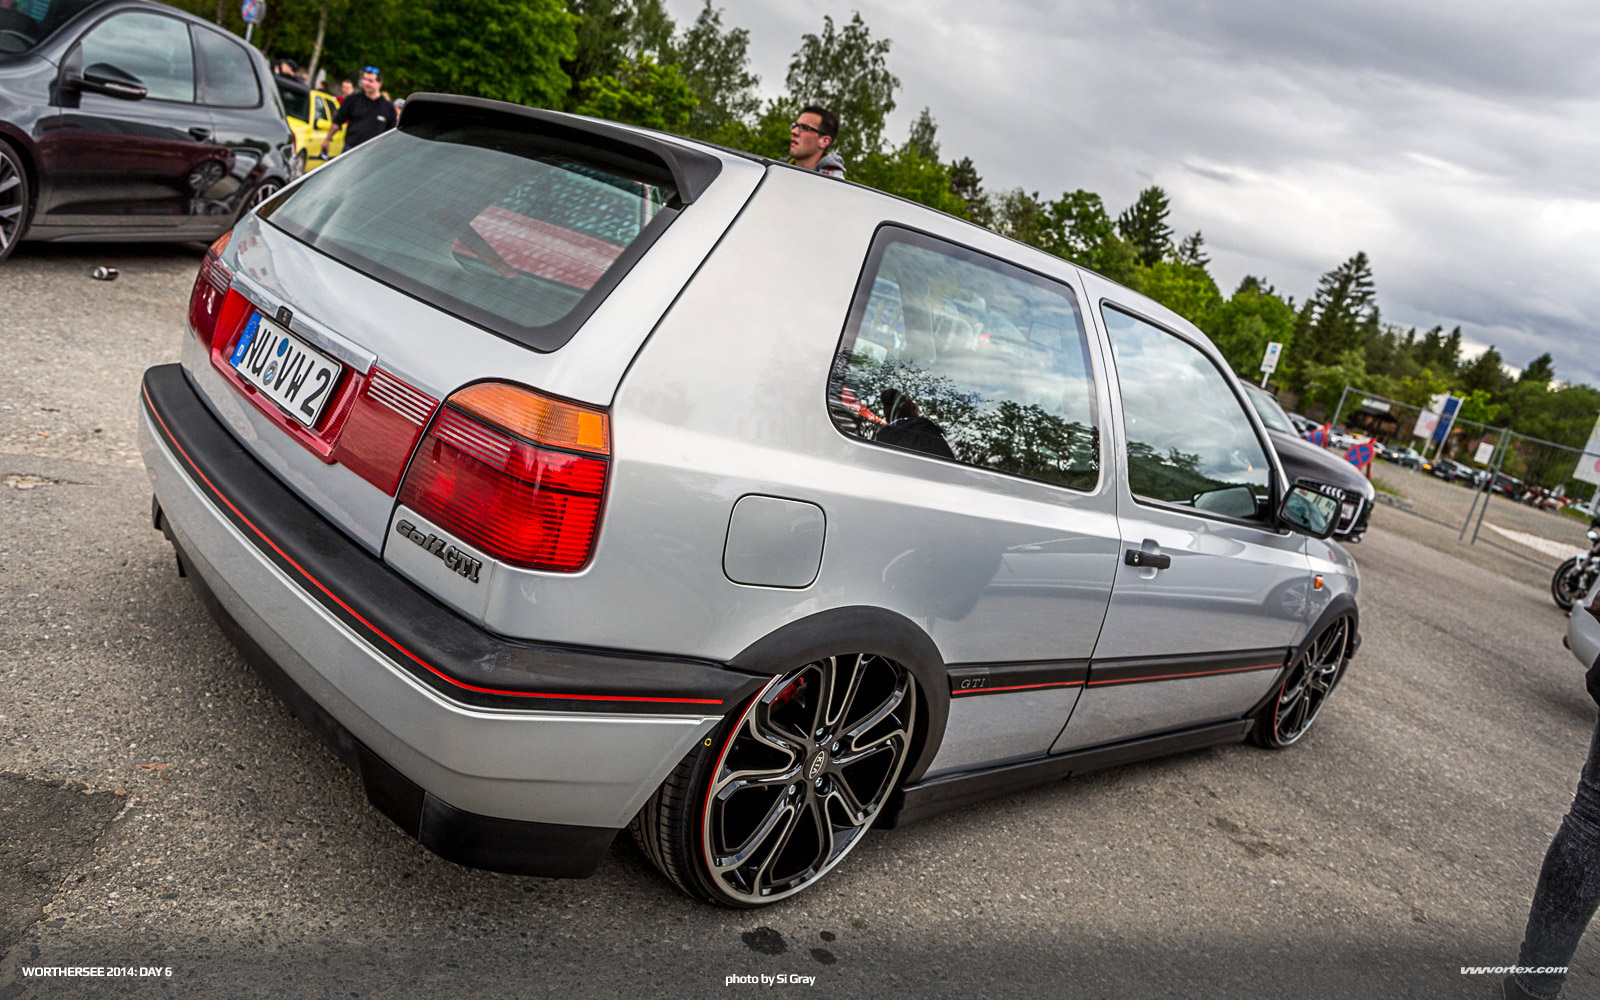 worthersee 2014 s best volkswagen golf 3 jetta 3 builds vwvortex worthersee 2014 s best volkswagen golf